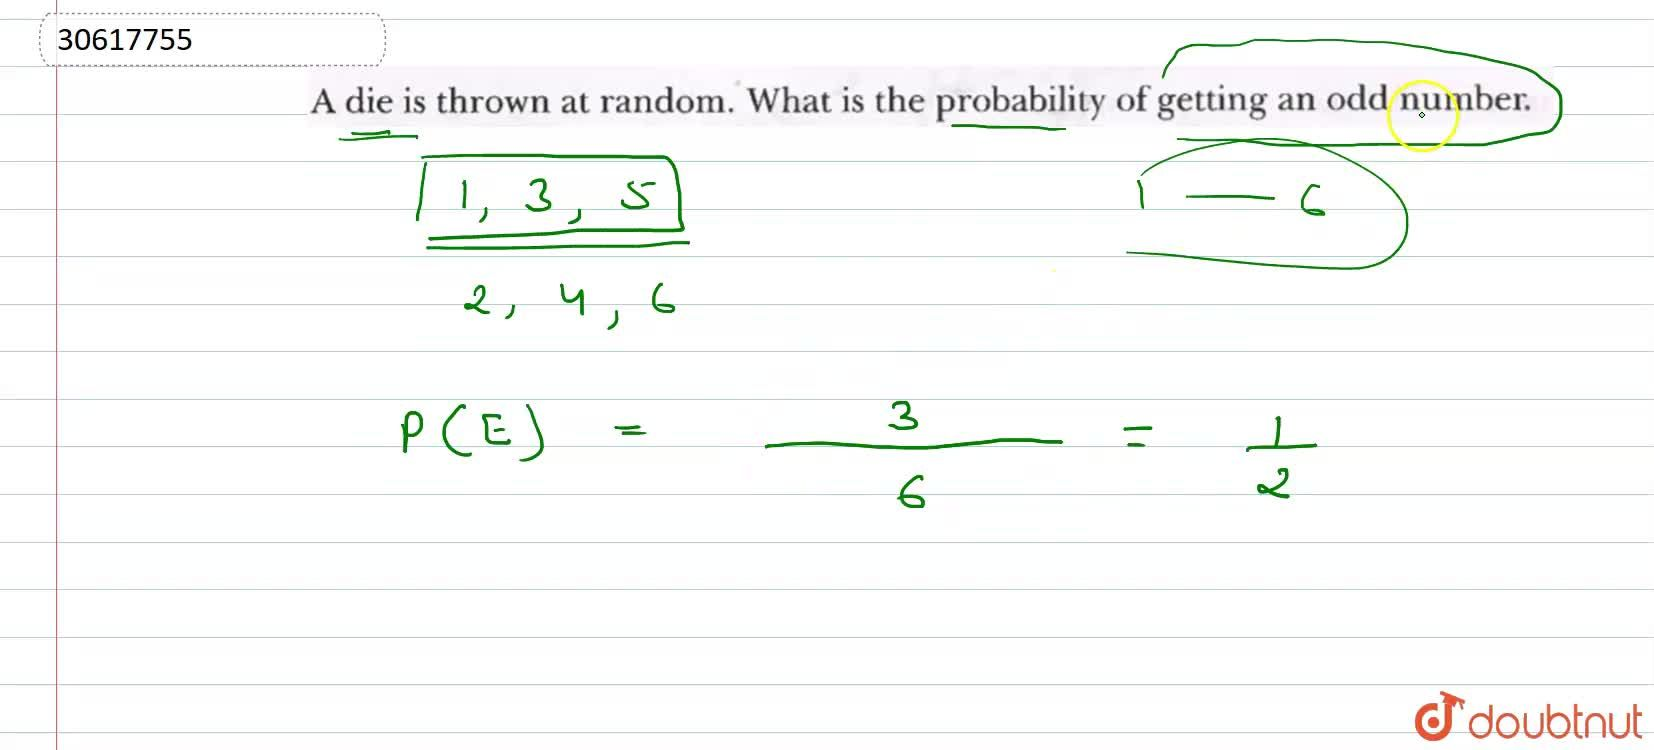 Solution for A die is thrwon at randow. What is the probability